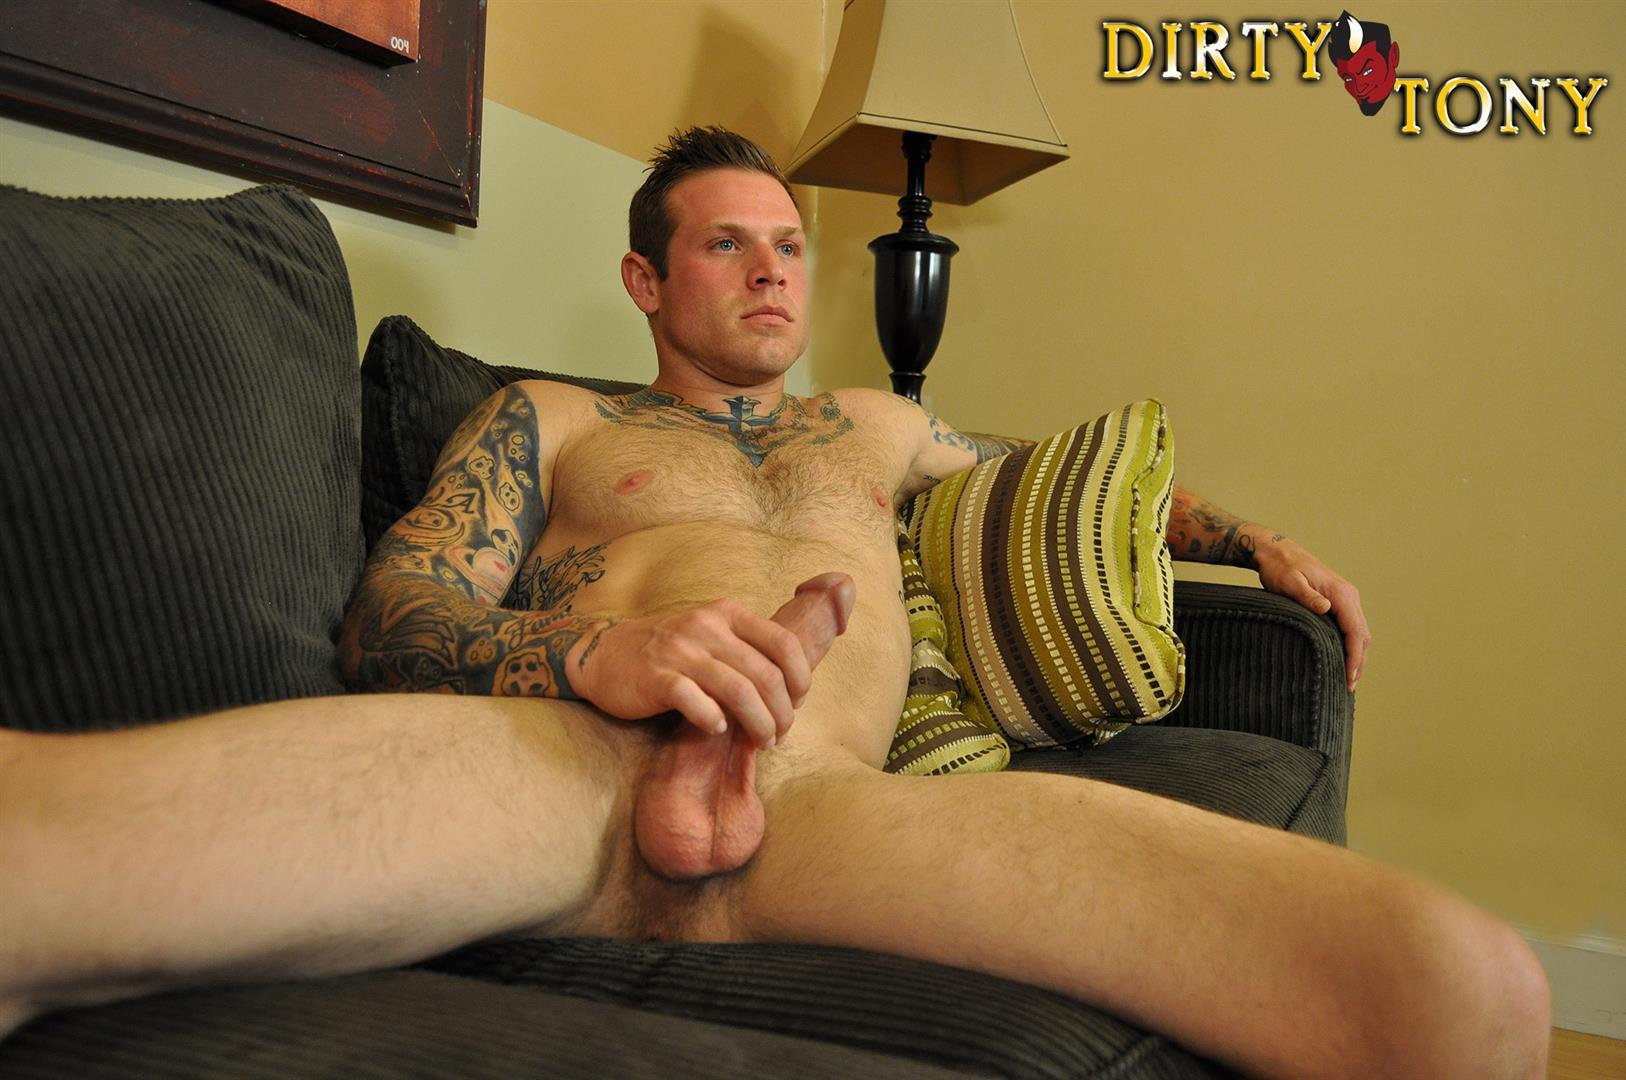 Dirty Tony Conor Michaels Straight Hunk Jerking His Big Cock Amateur Gay Porn 12 Amateur Straight Hairy Tatted Muscle Hunk Stroking His Thick Cock